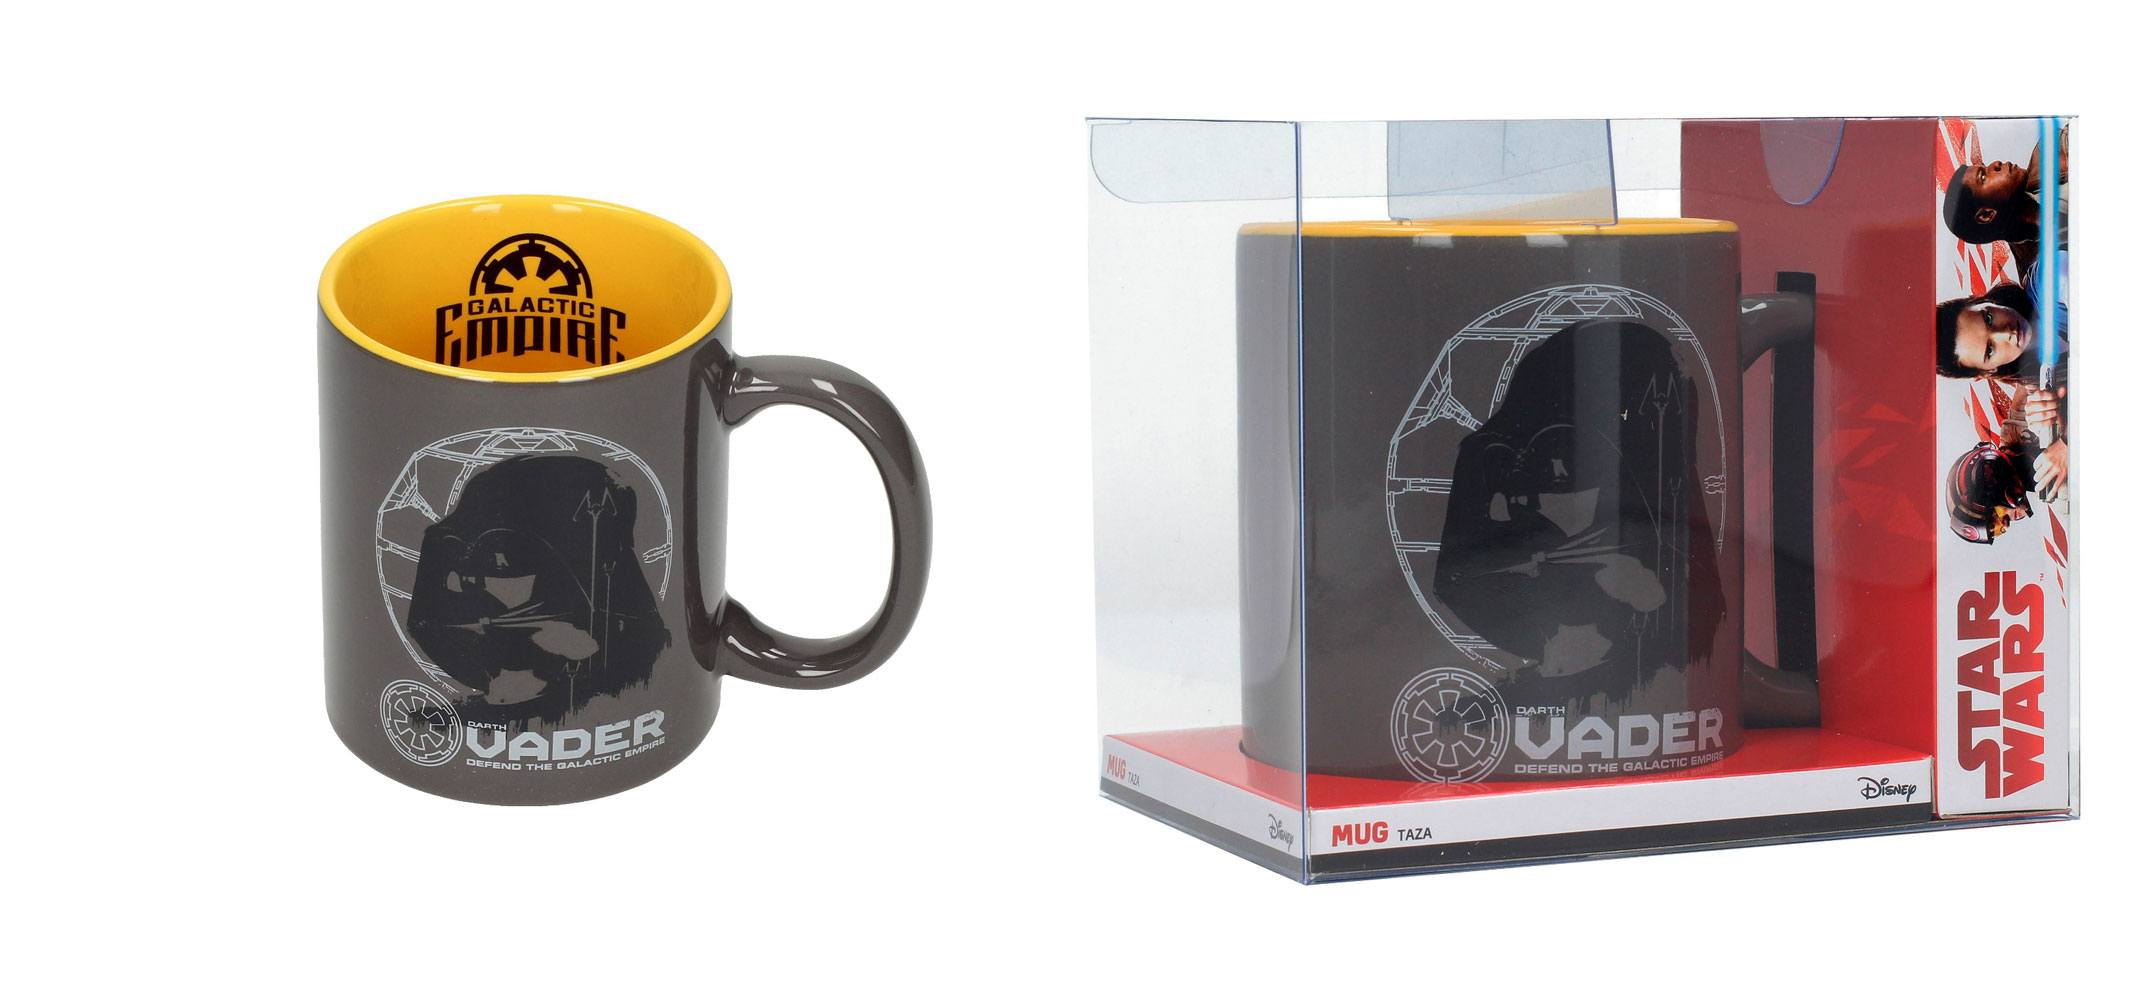 Star Wars Episode VIII Mug Darth Vader